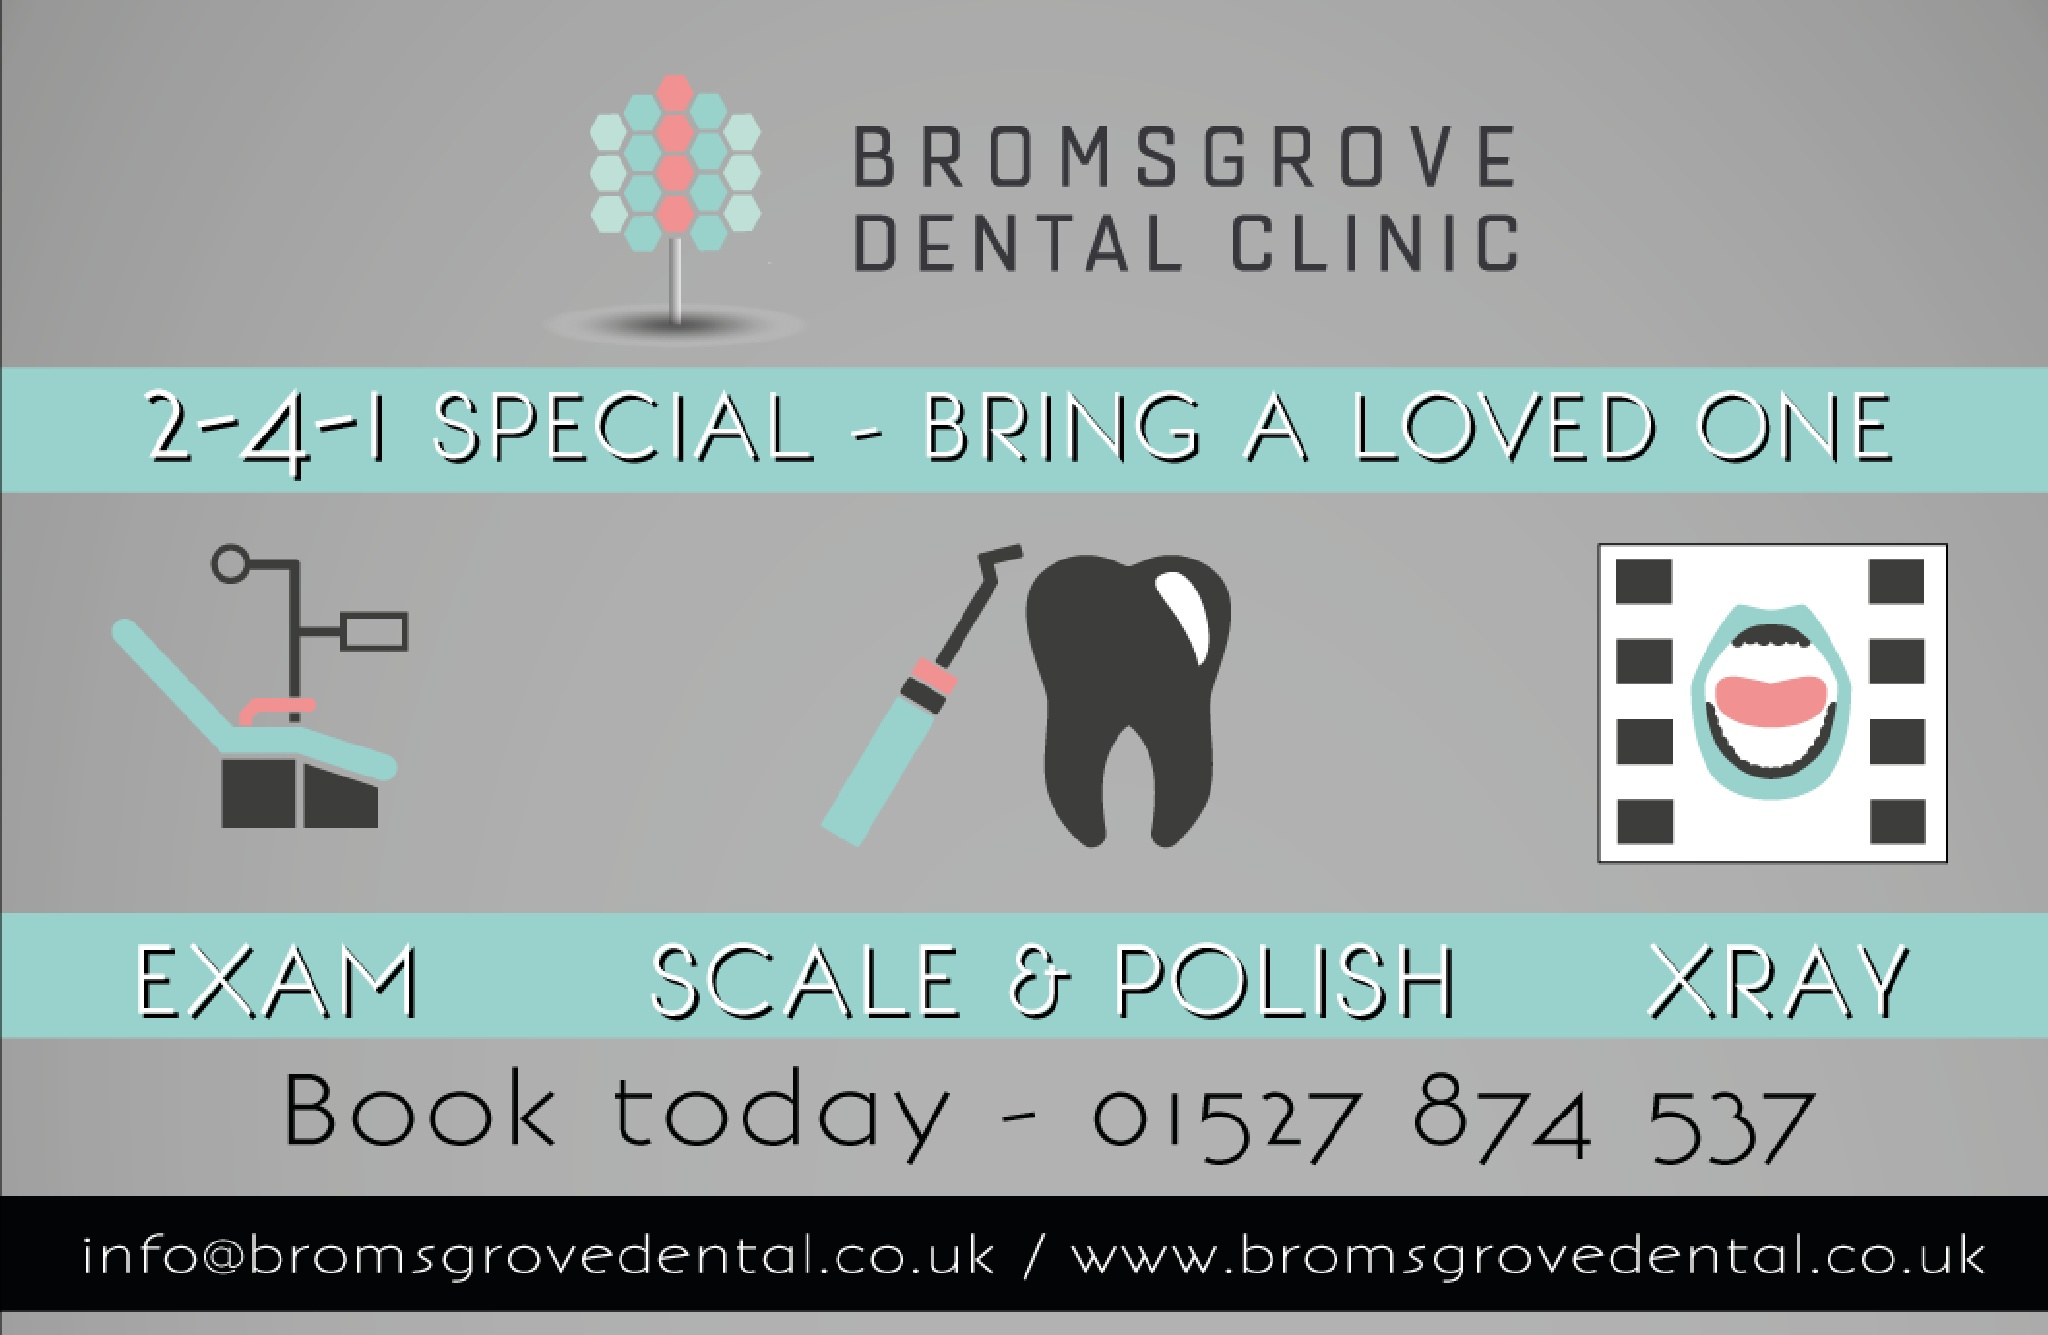 Bromsgrove Dental Clinic February Offer by Bromsgrove Dental Clinic